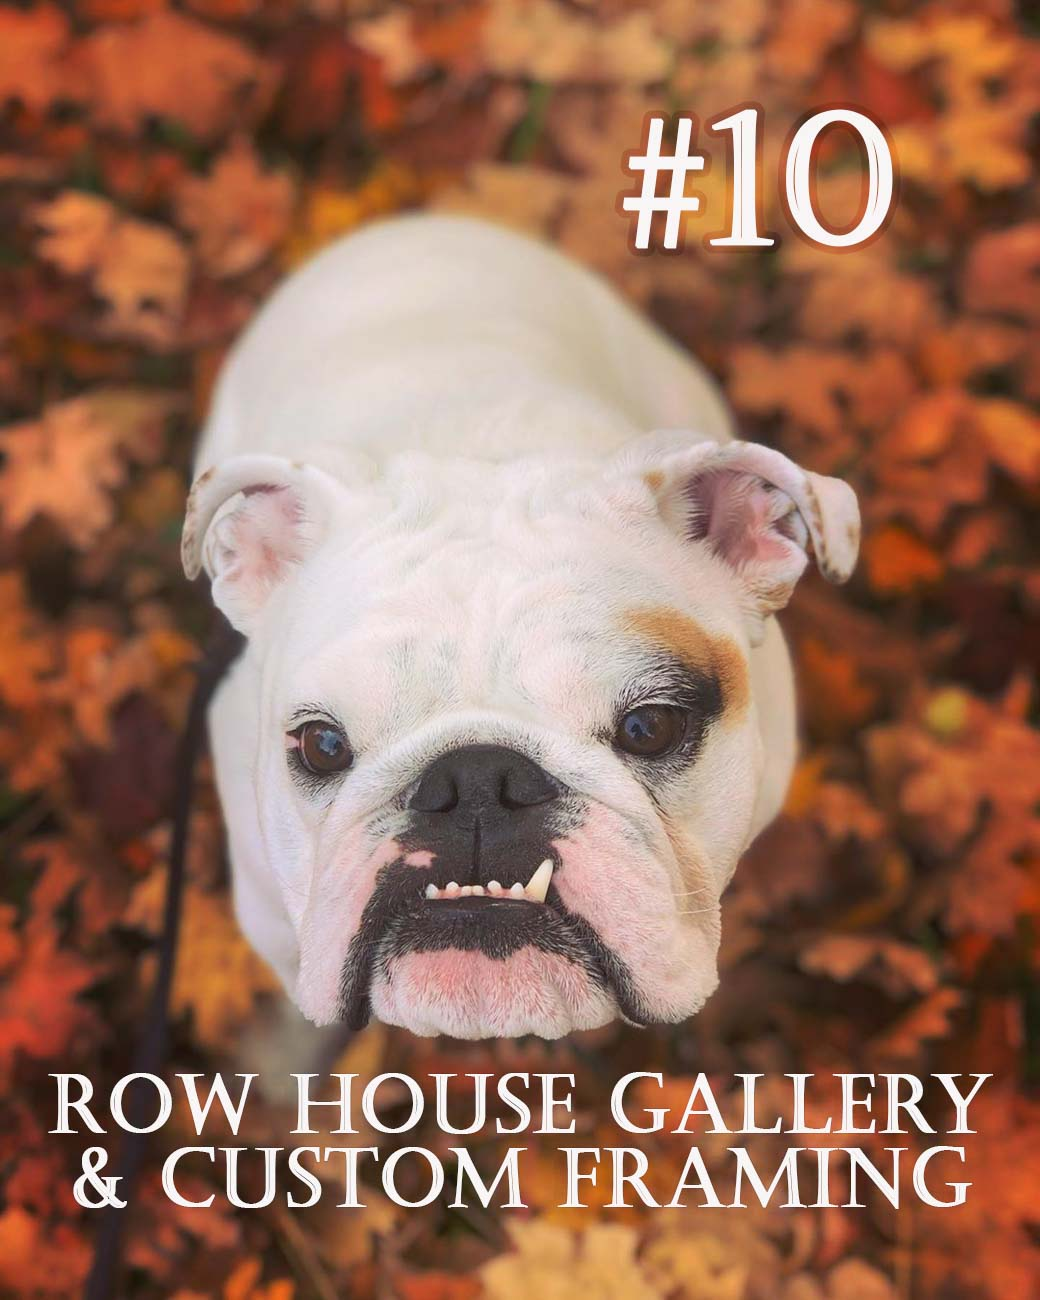 Image courtesy of Instagram user @mose_the_bulldog   via Discover Clermont // Published: 11.28.20